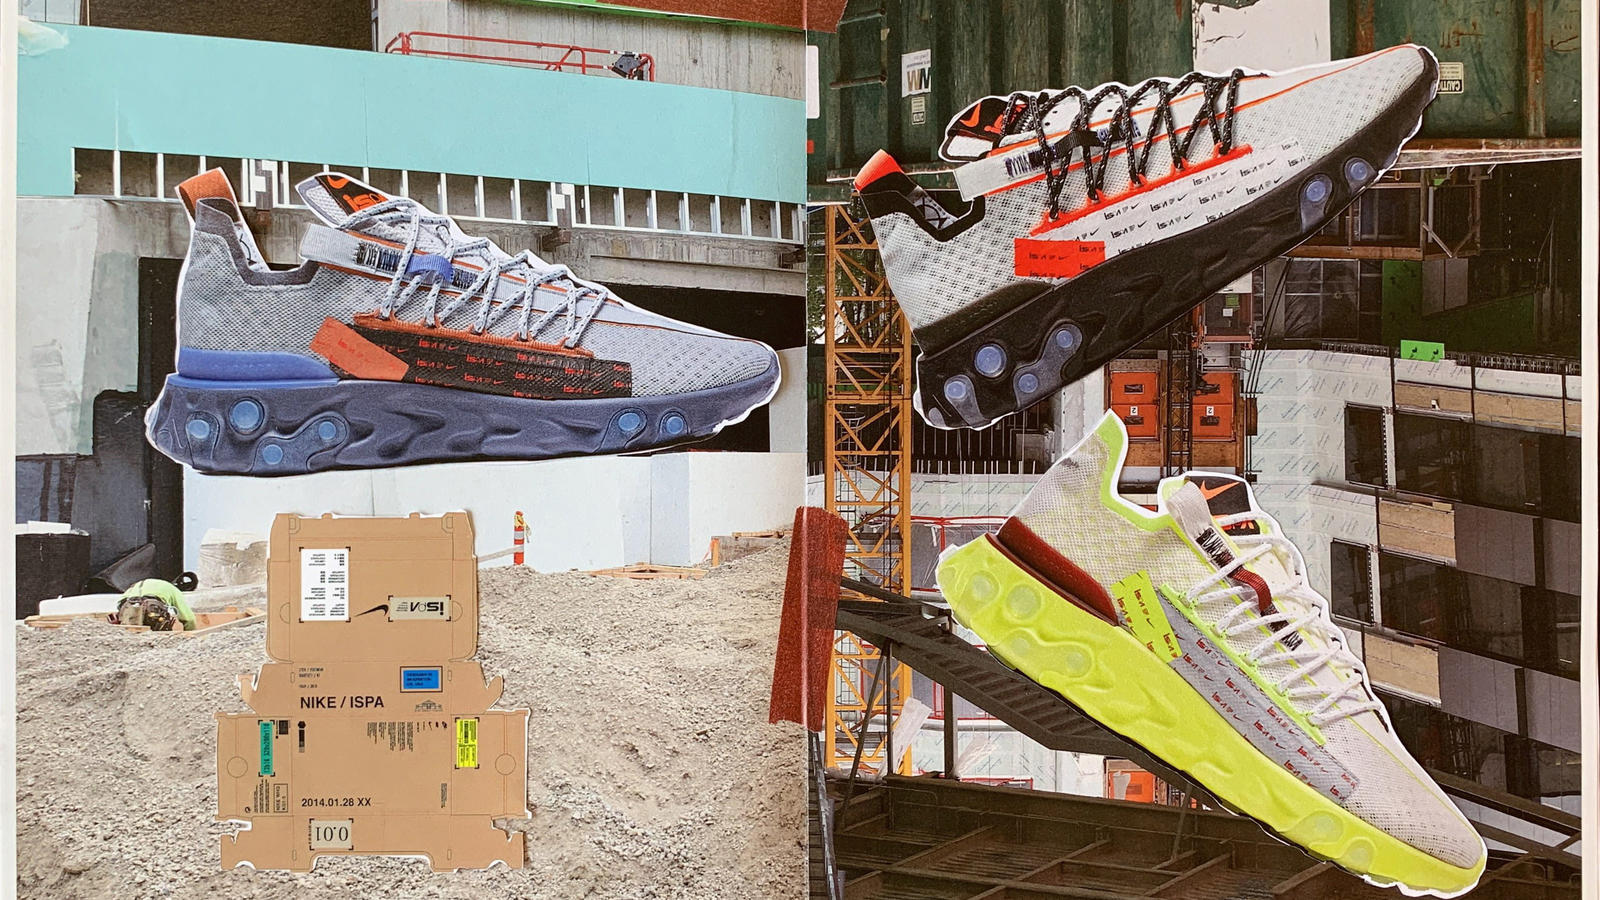 22841d5411 Nike React Runner ISPA Summer 2019